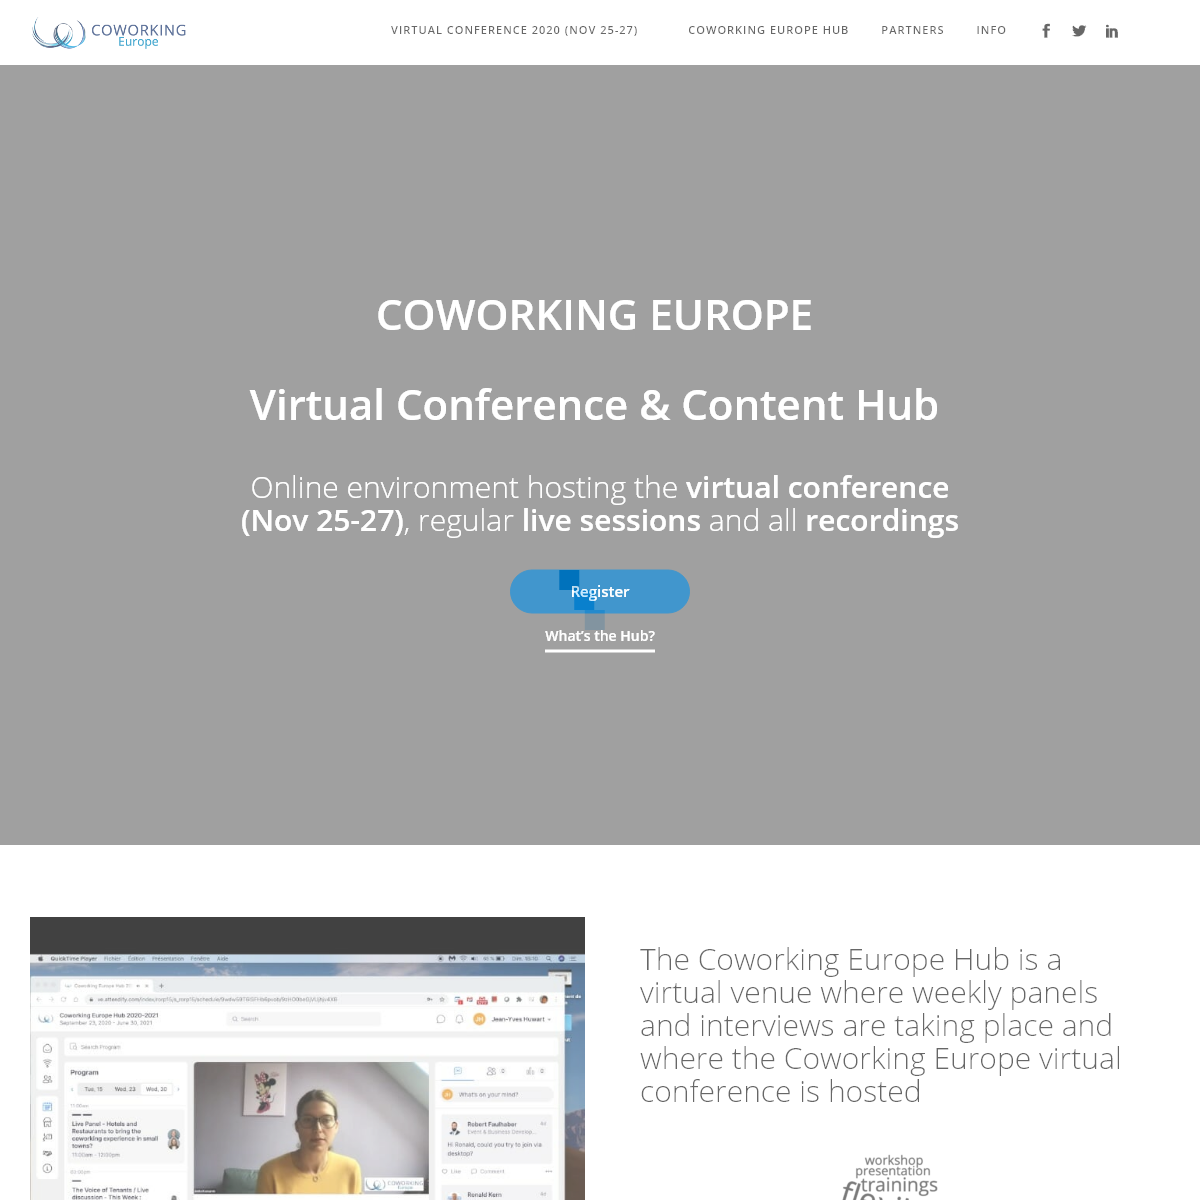 COWORKING EUROPE Virtual Conference & Content Hub